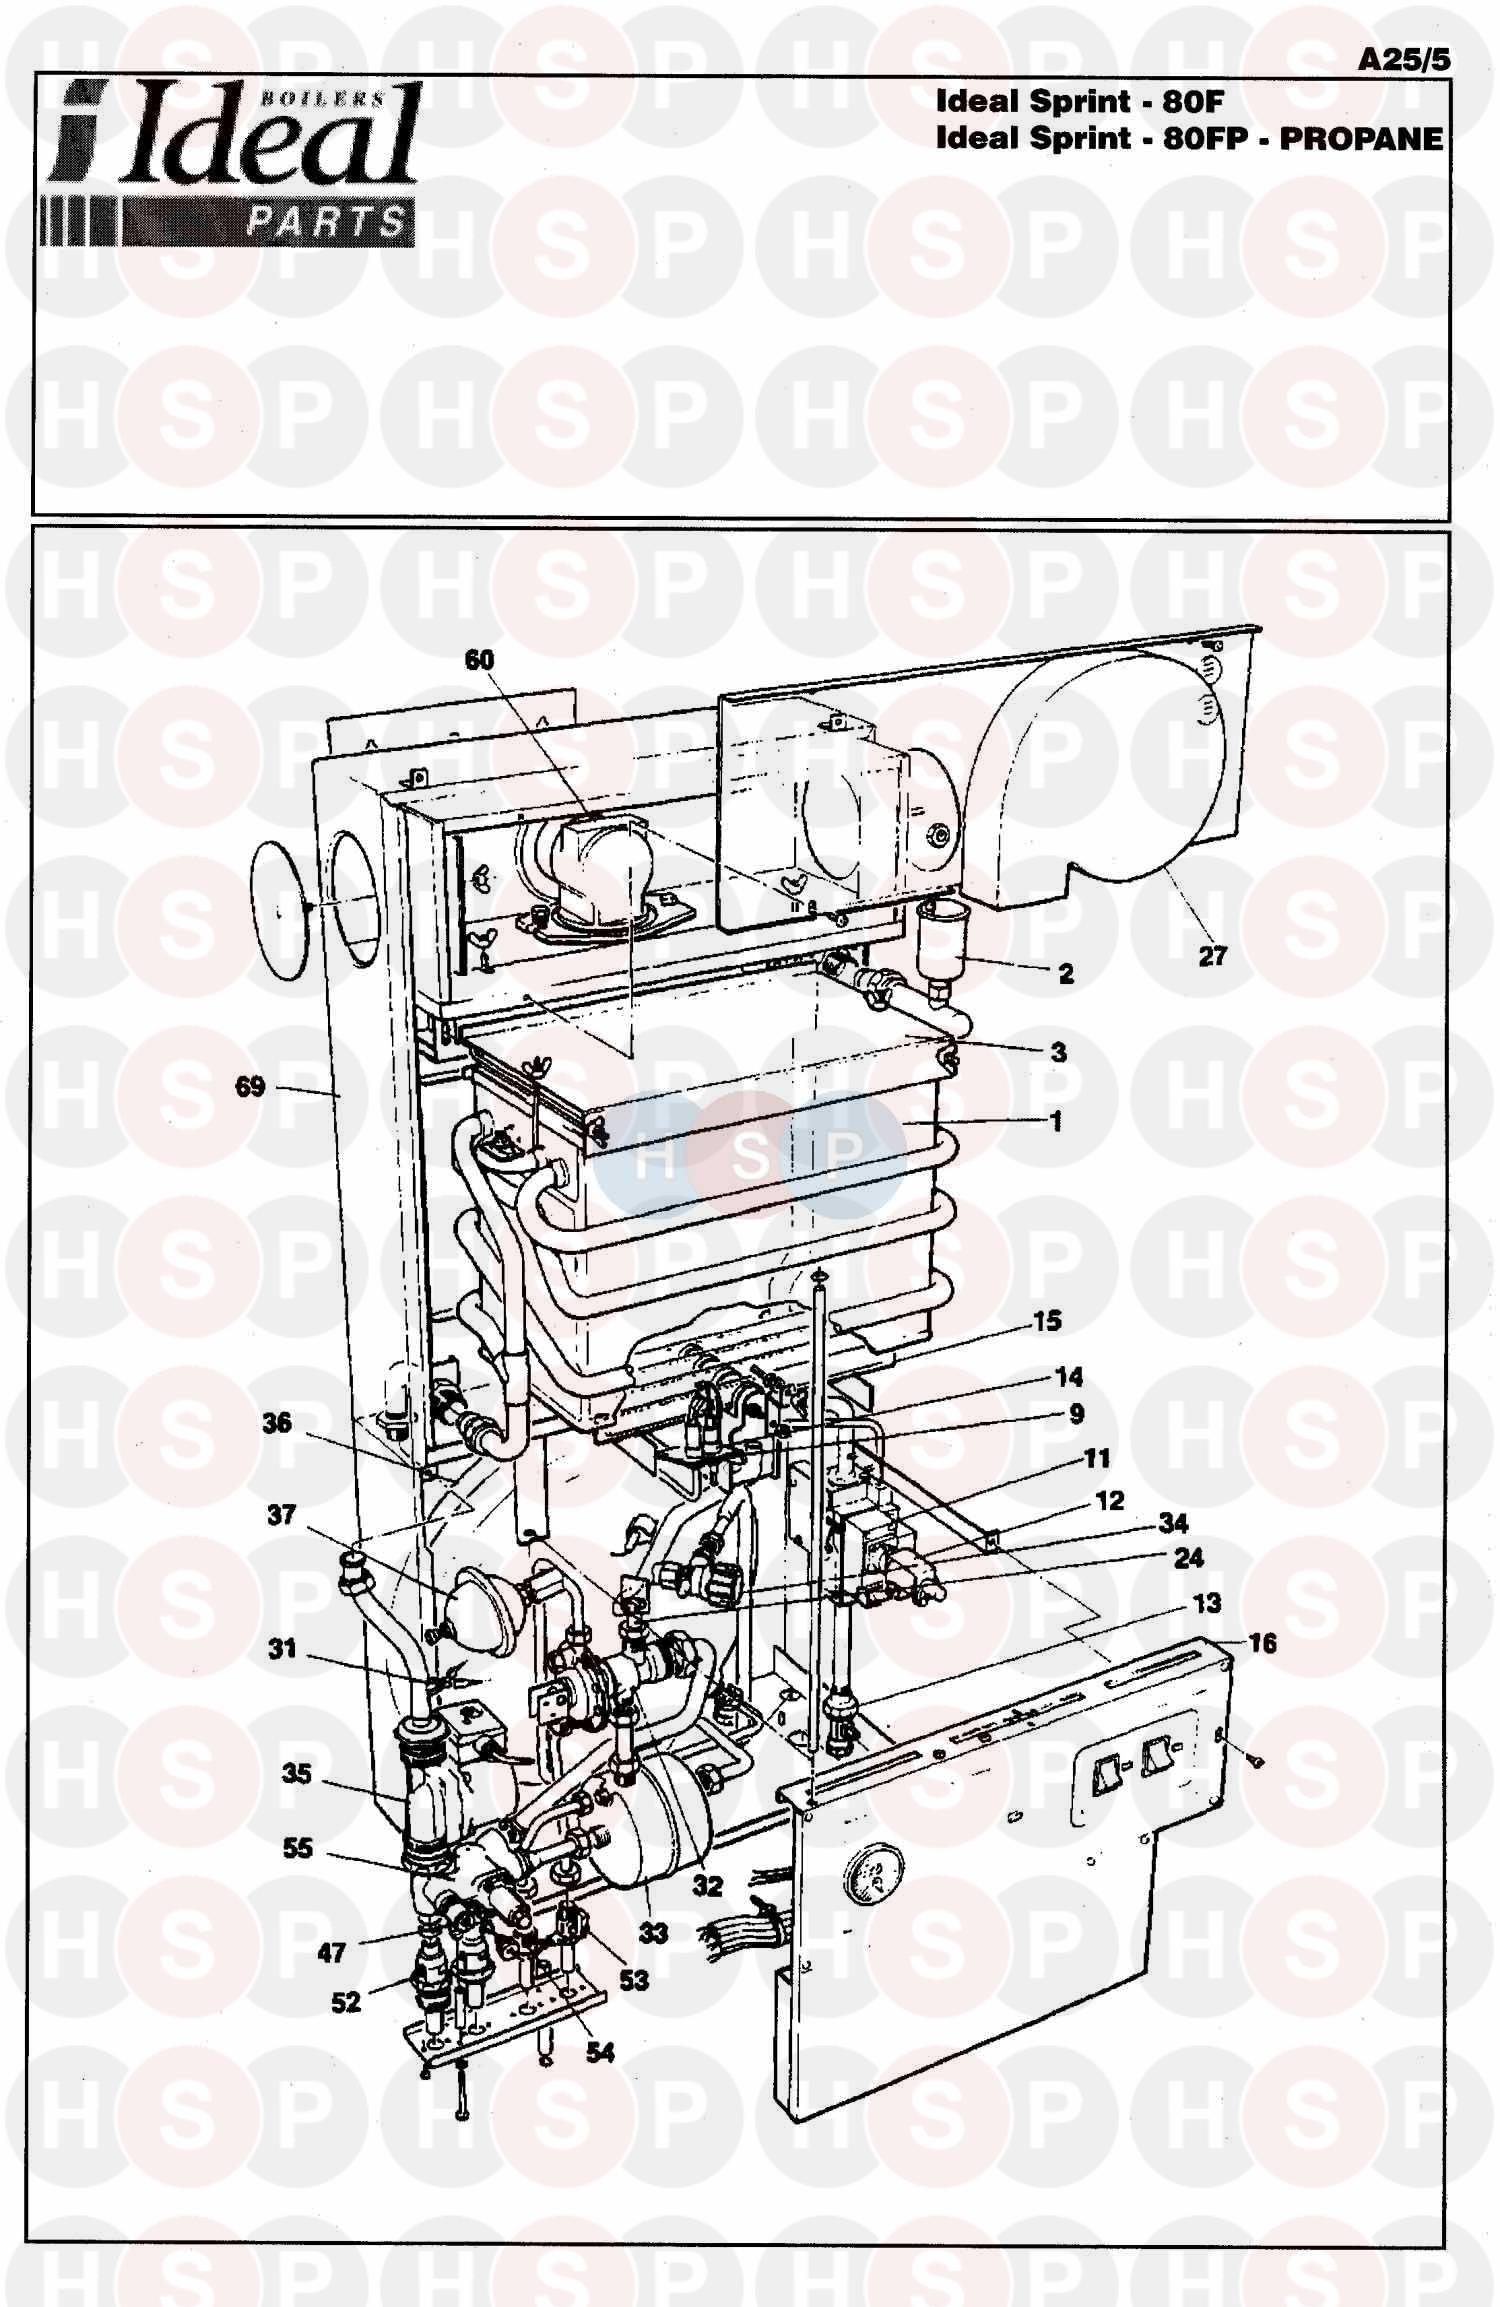 ideal sprint 80f  boiler assembly 1  diagram